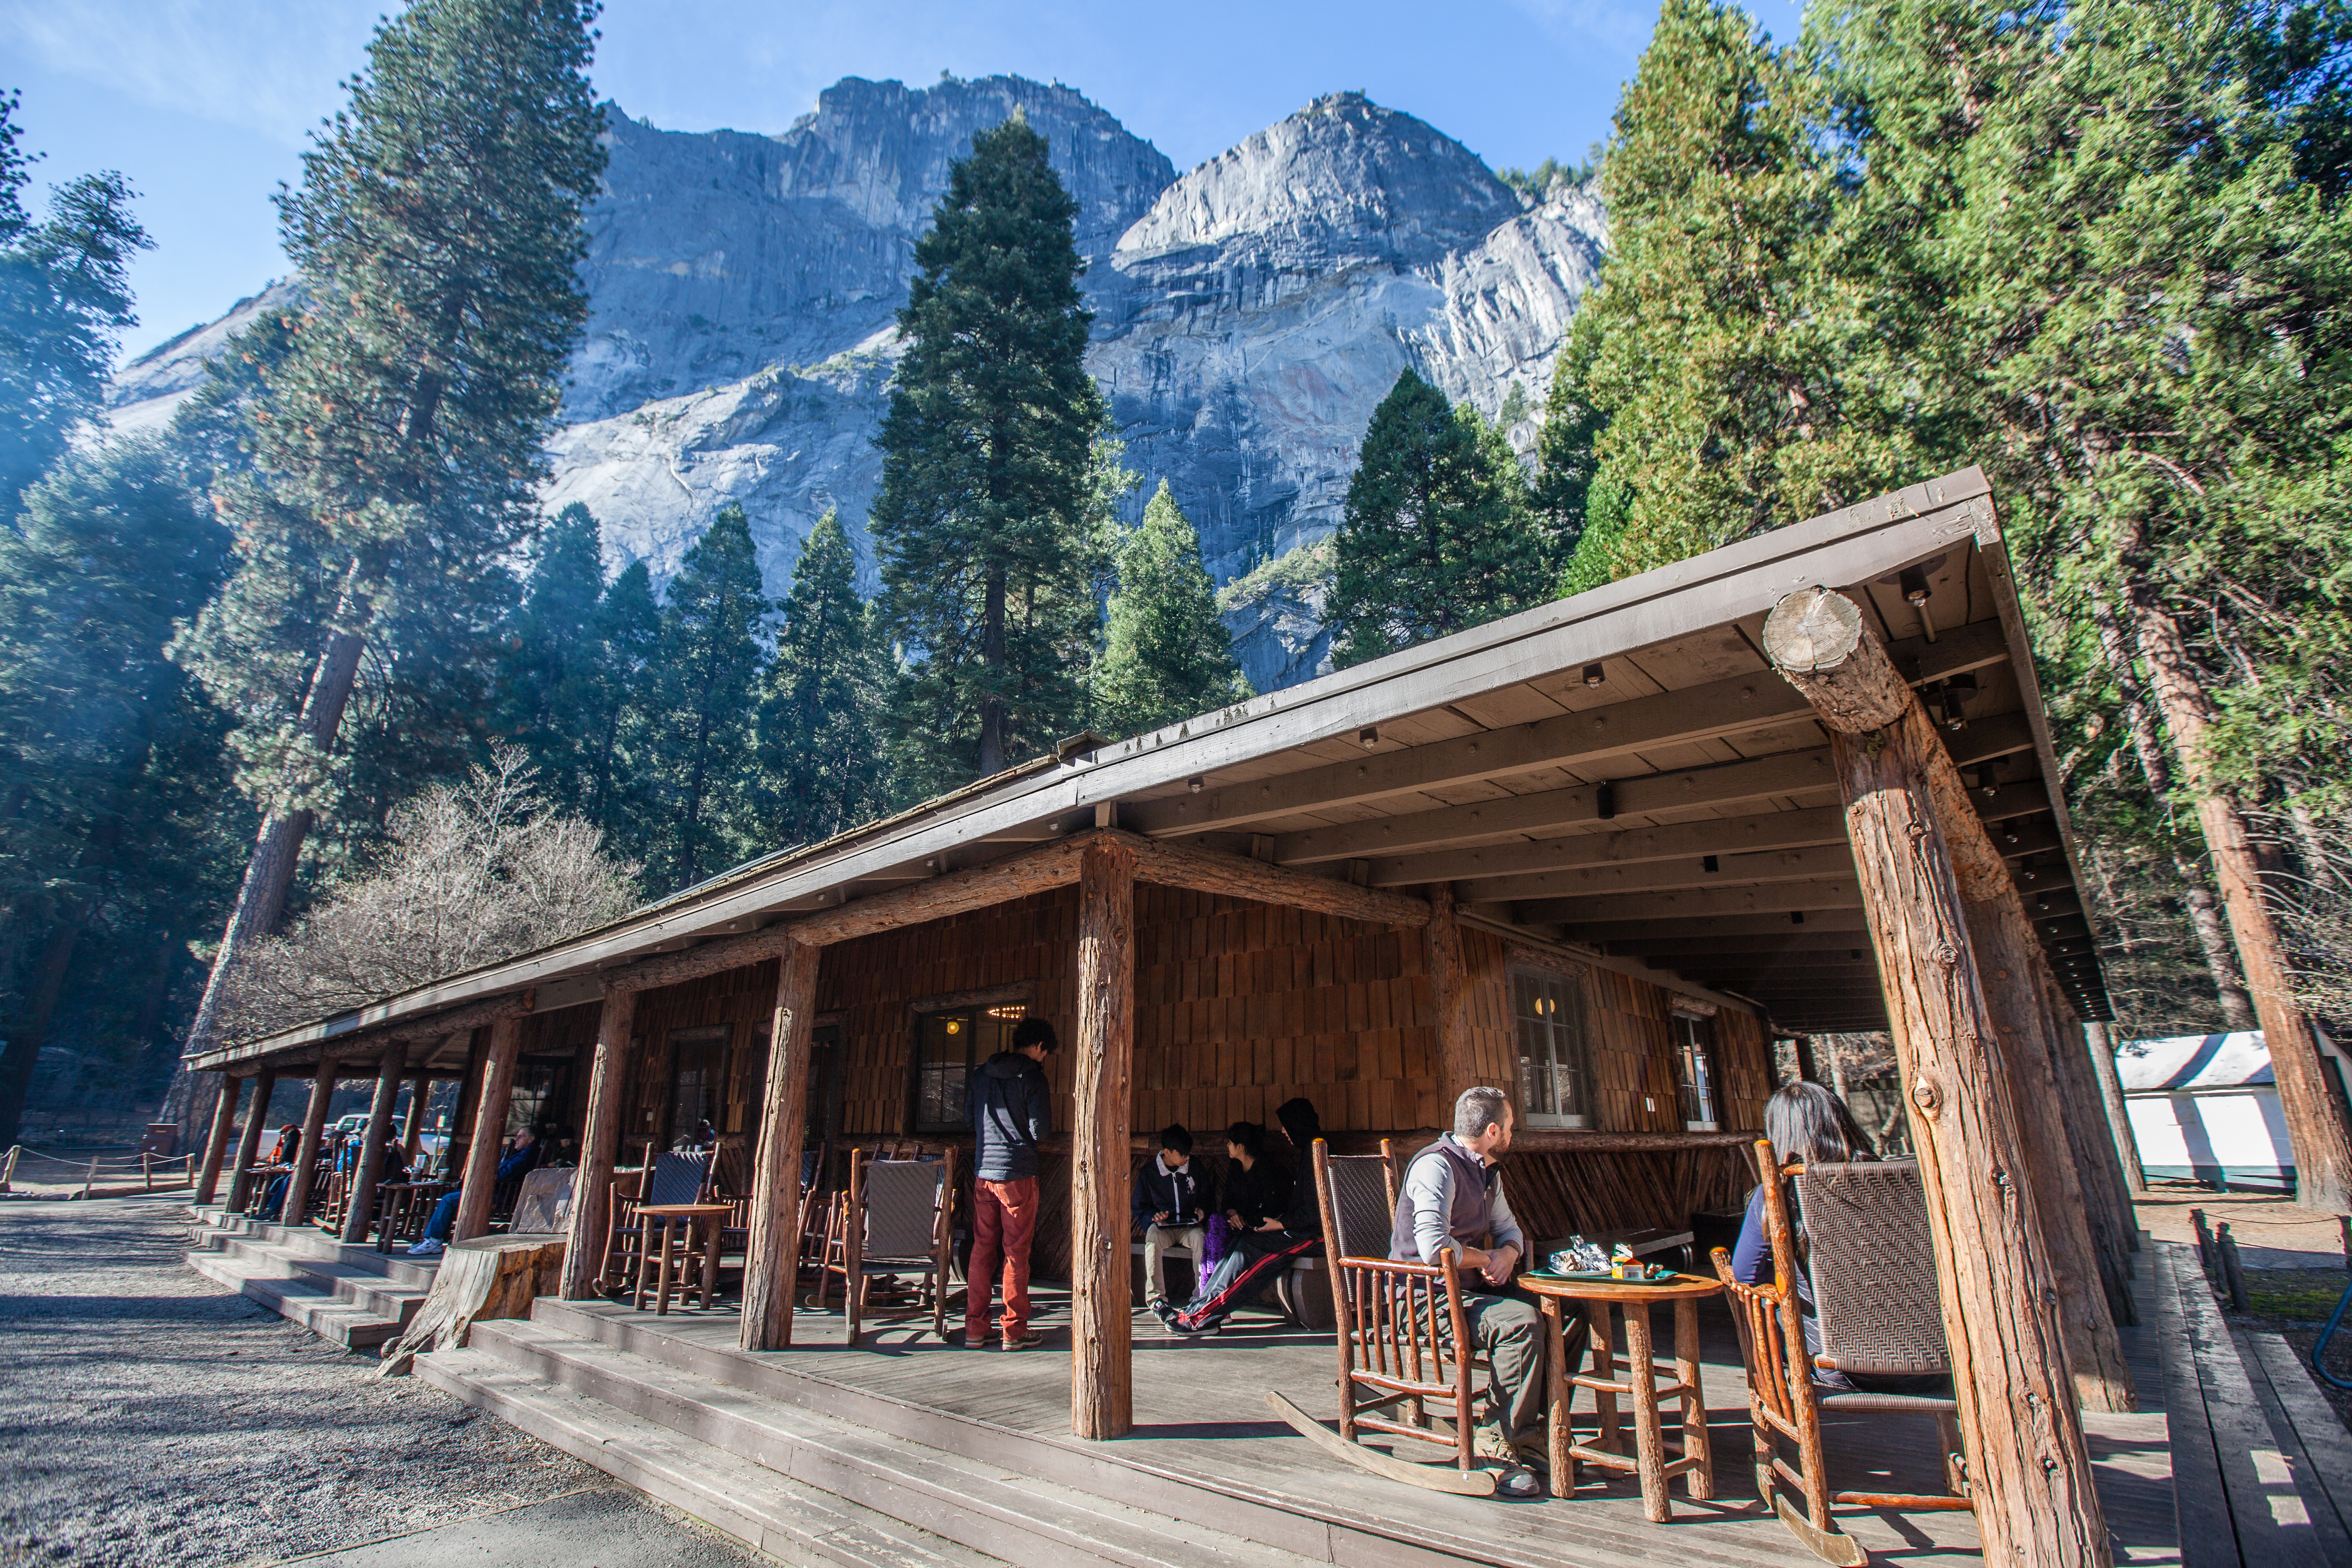 cabins station htm park national yose feet yosemite learn still road tioga pass snow nps the in entrance news of remains building several photo surround closed